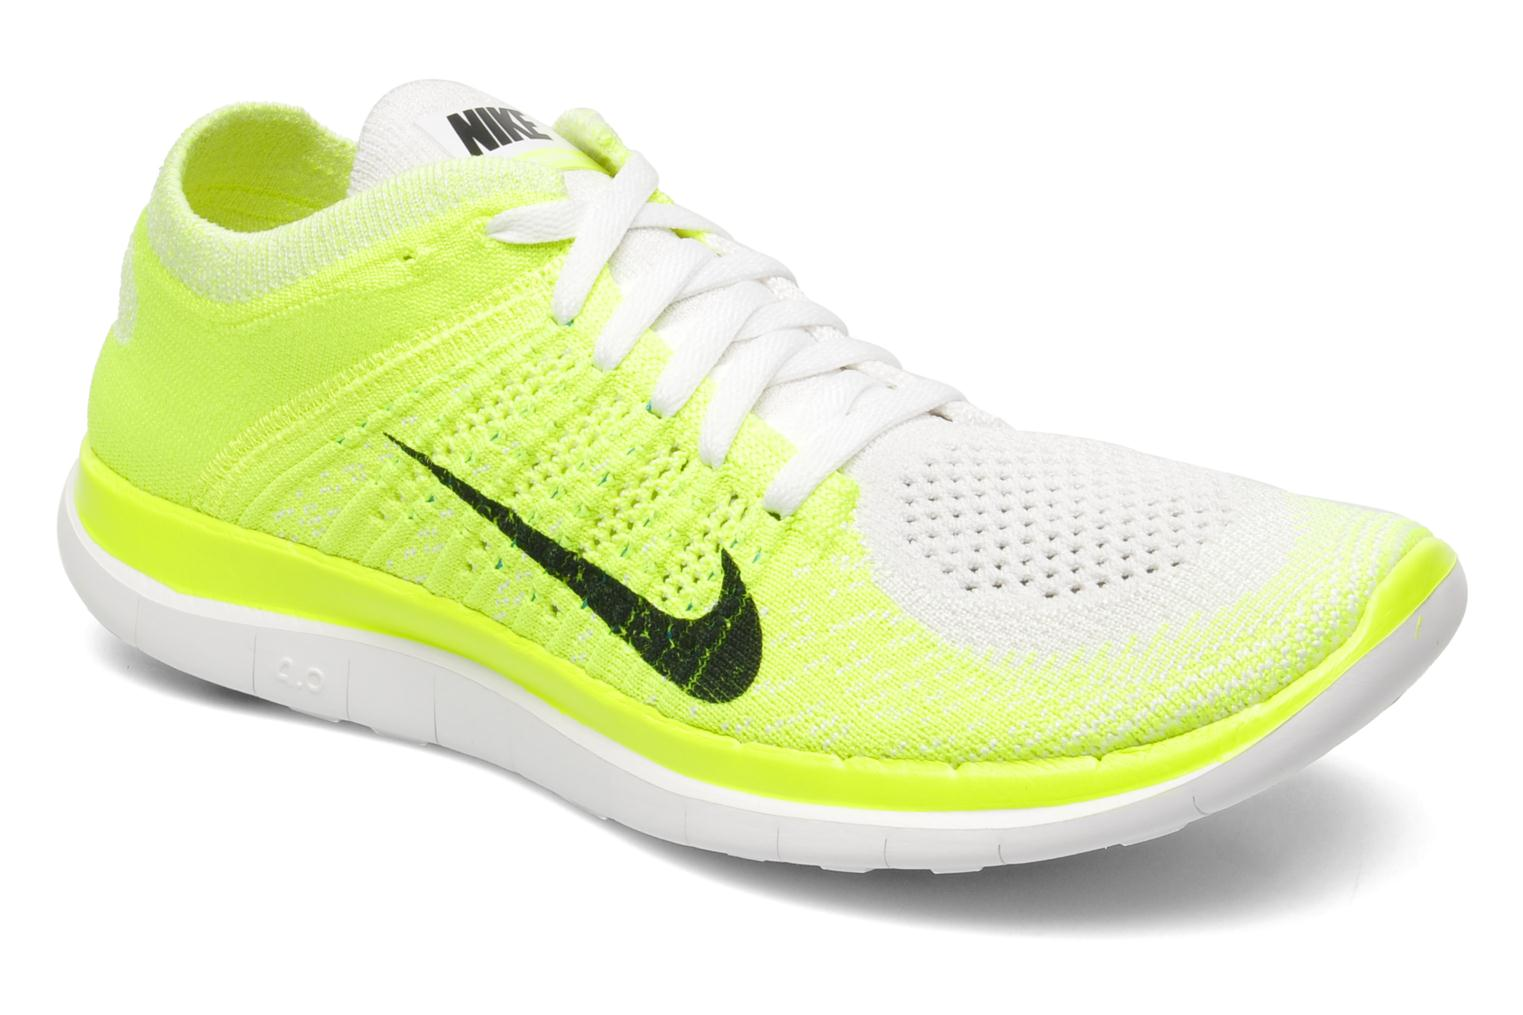 nike wmns nike free 4 0 flyknit sport shoes in yellow at 206984. Black Bedroom Furniture Sets. Home Design Ideas